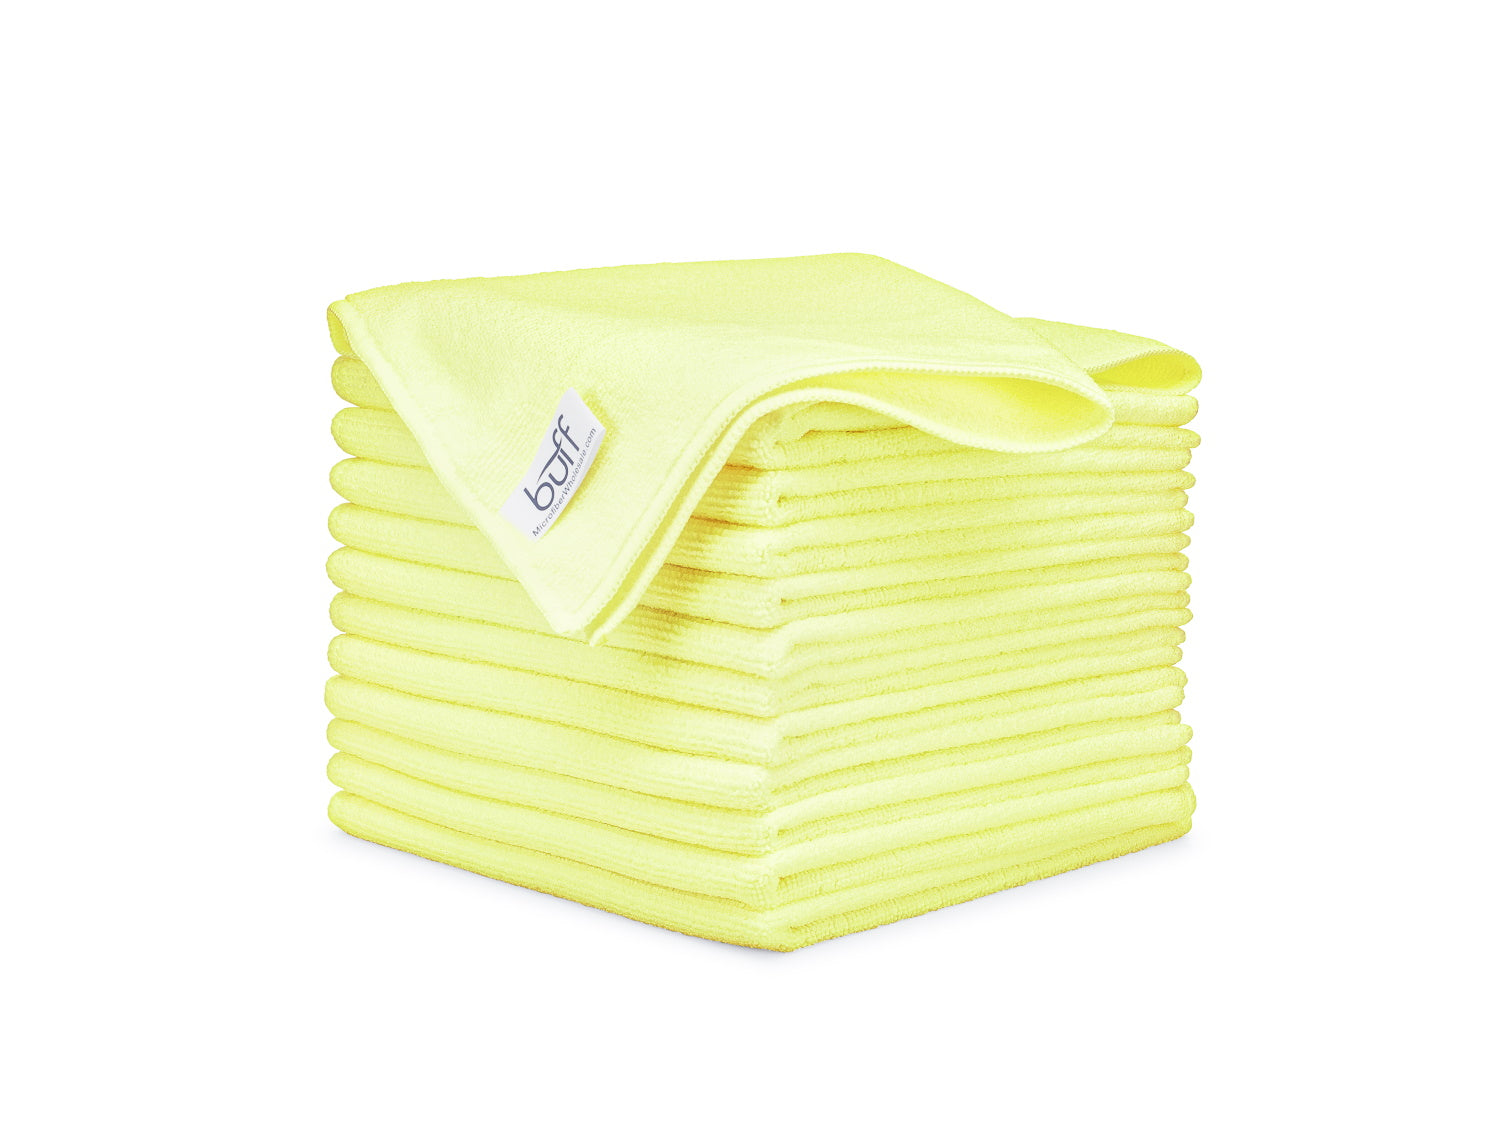 Yellow Microfiber Towels 12 Pack